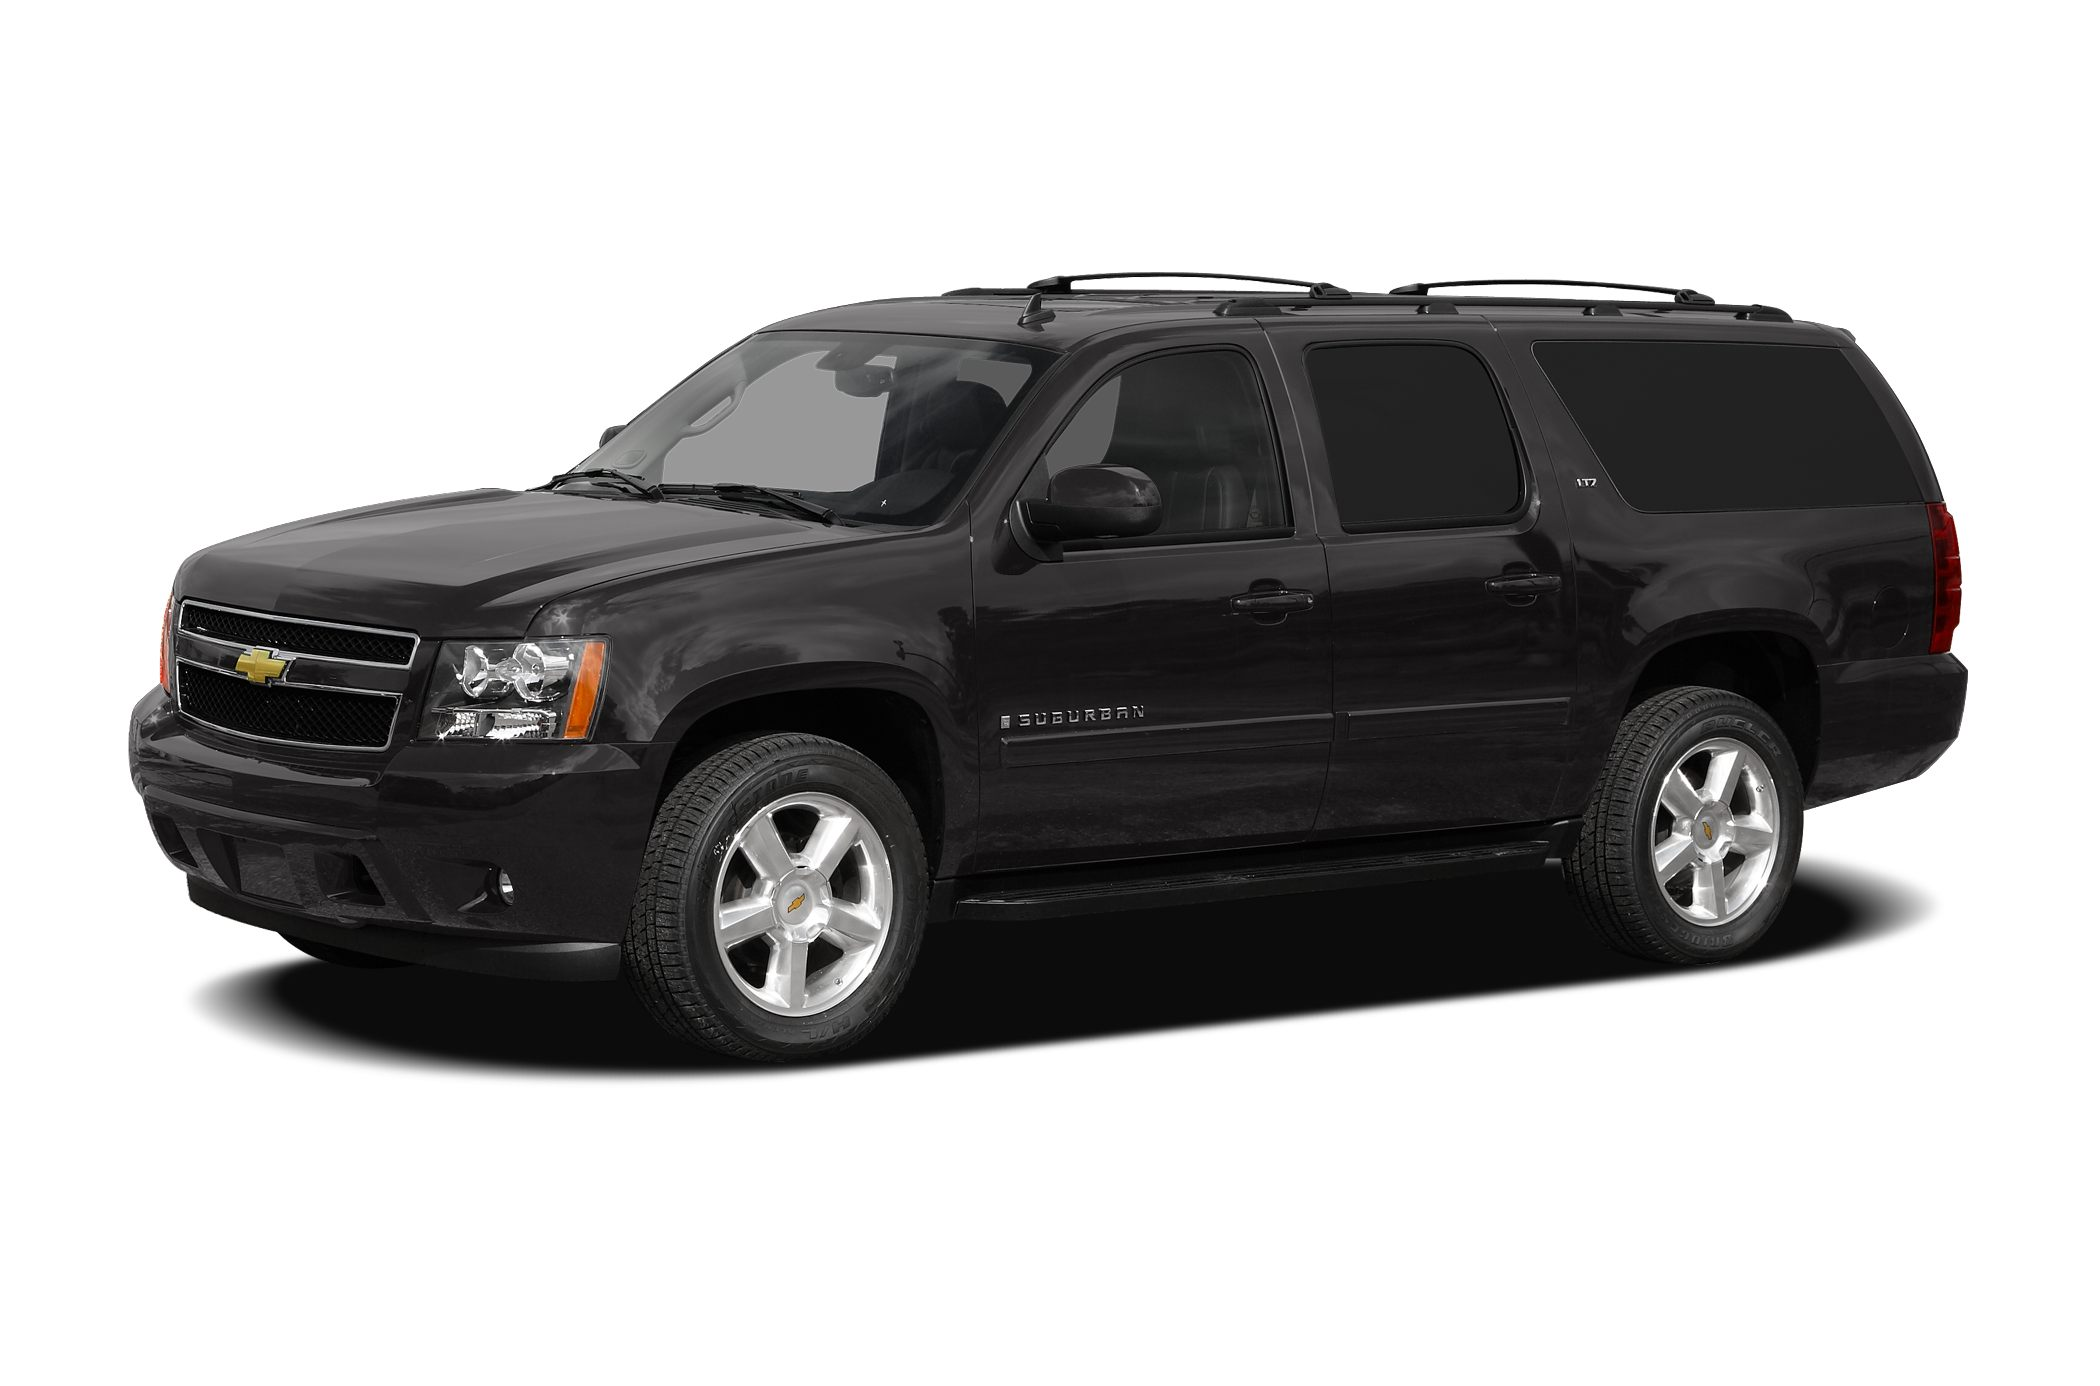 2007 Chevrolet Suburban 1500 LS SUV for sale in Sioux City for $18,995 with 118,918 miles.